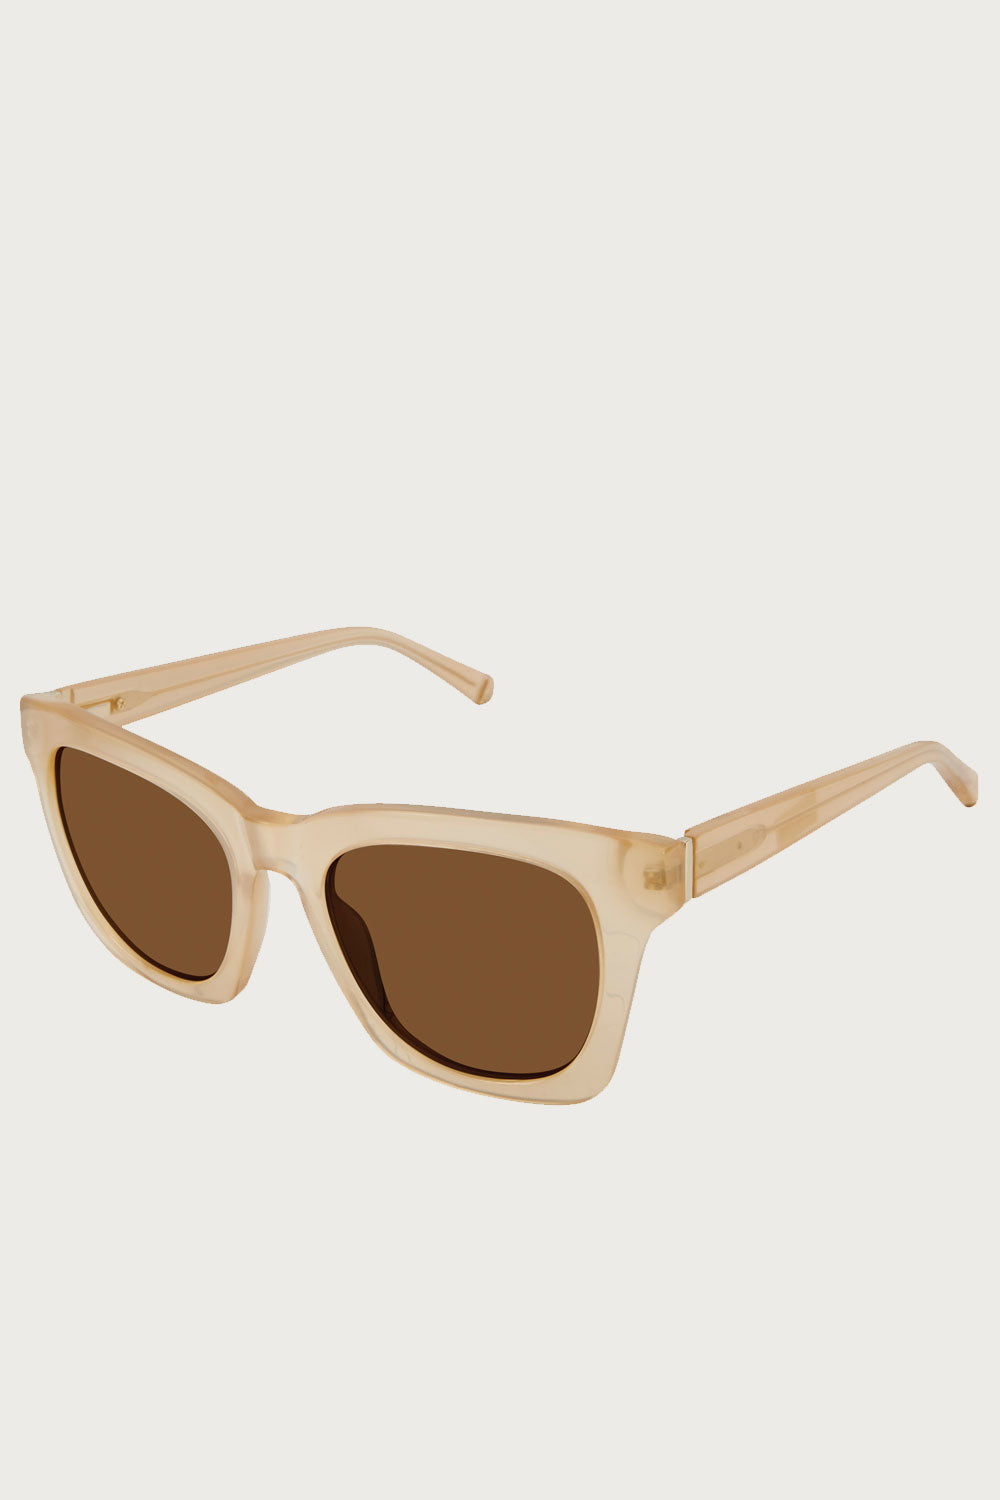 Marley Sunglasses in Champagne